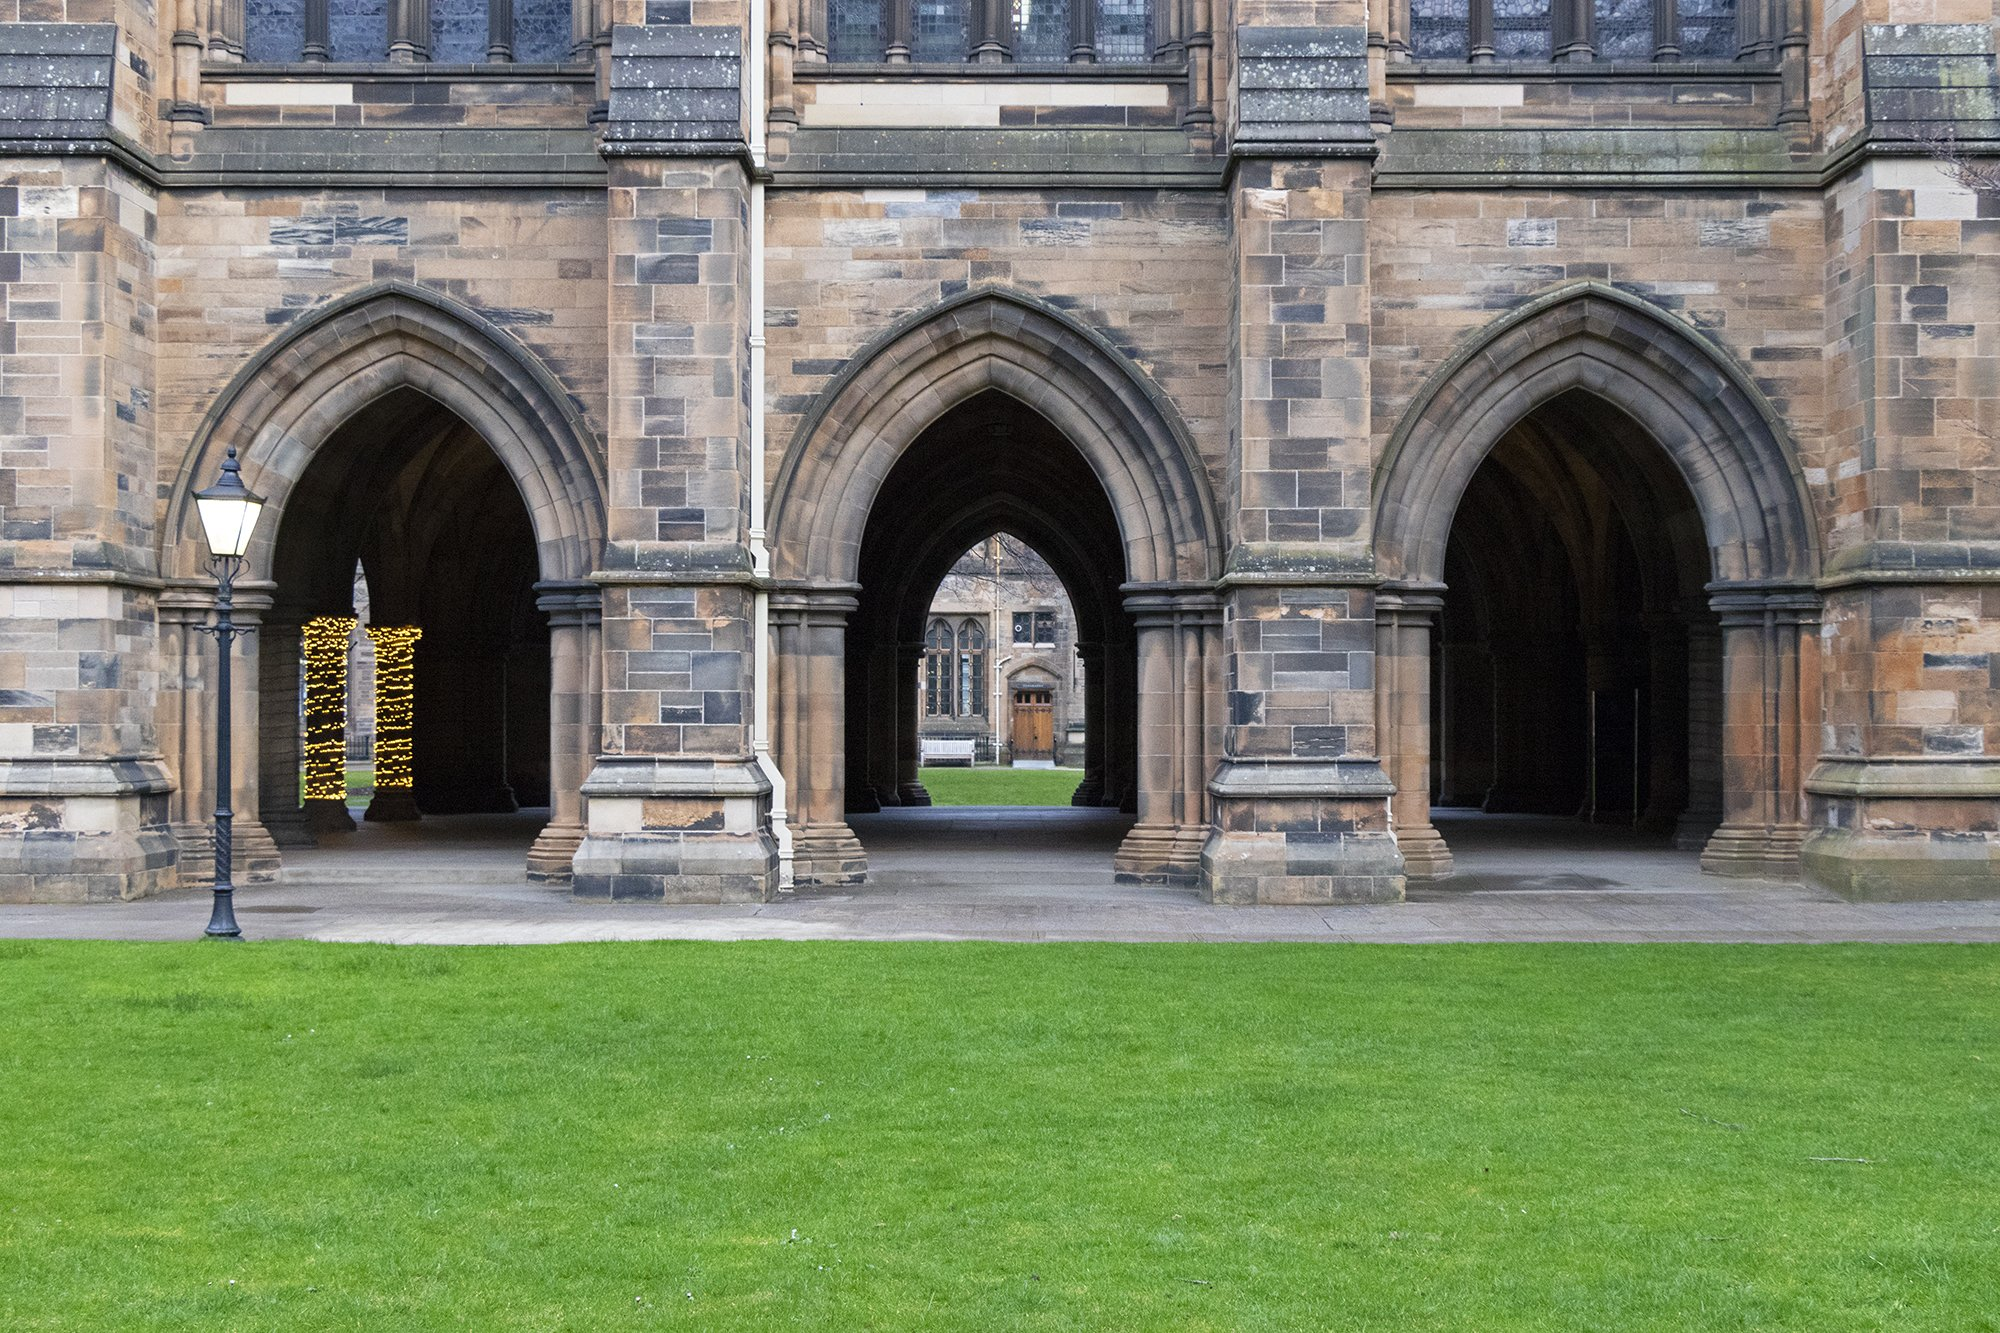 University of Glasgow arches and cloisters